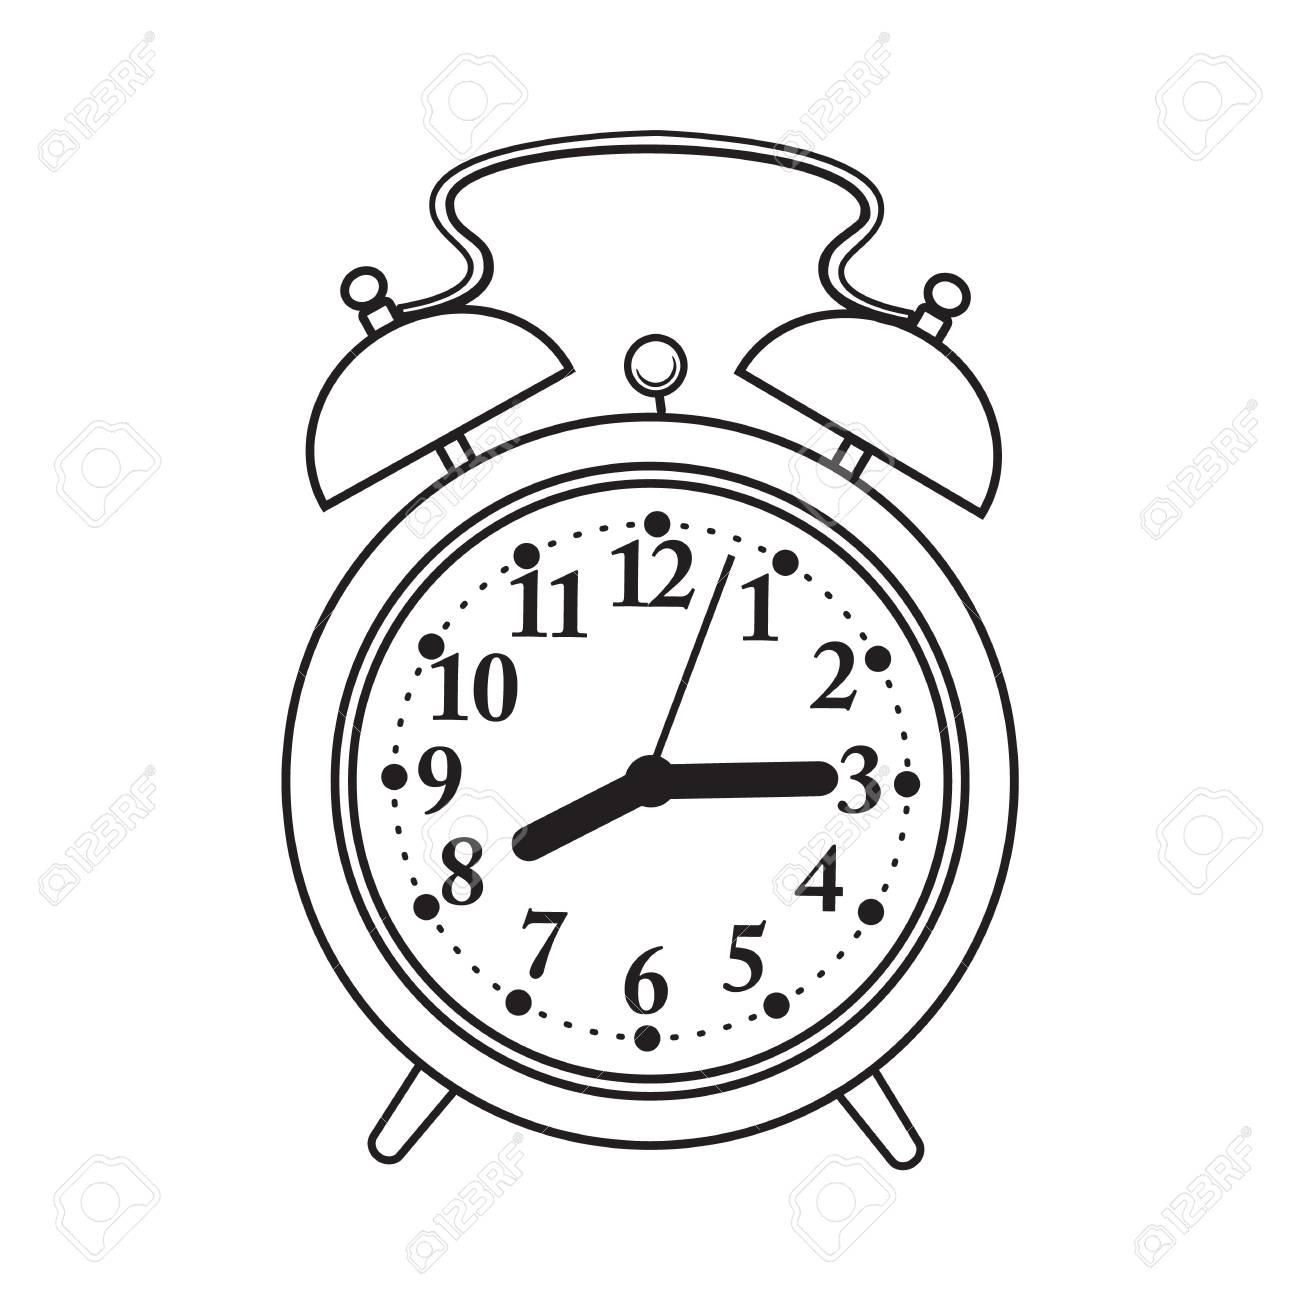 Retro style analog alarm clock, black and white sketch style